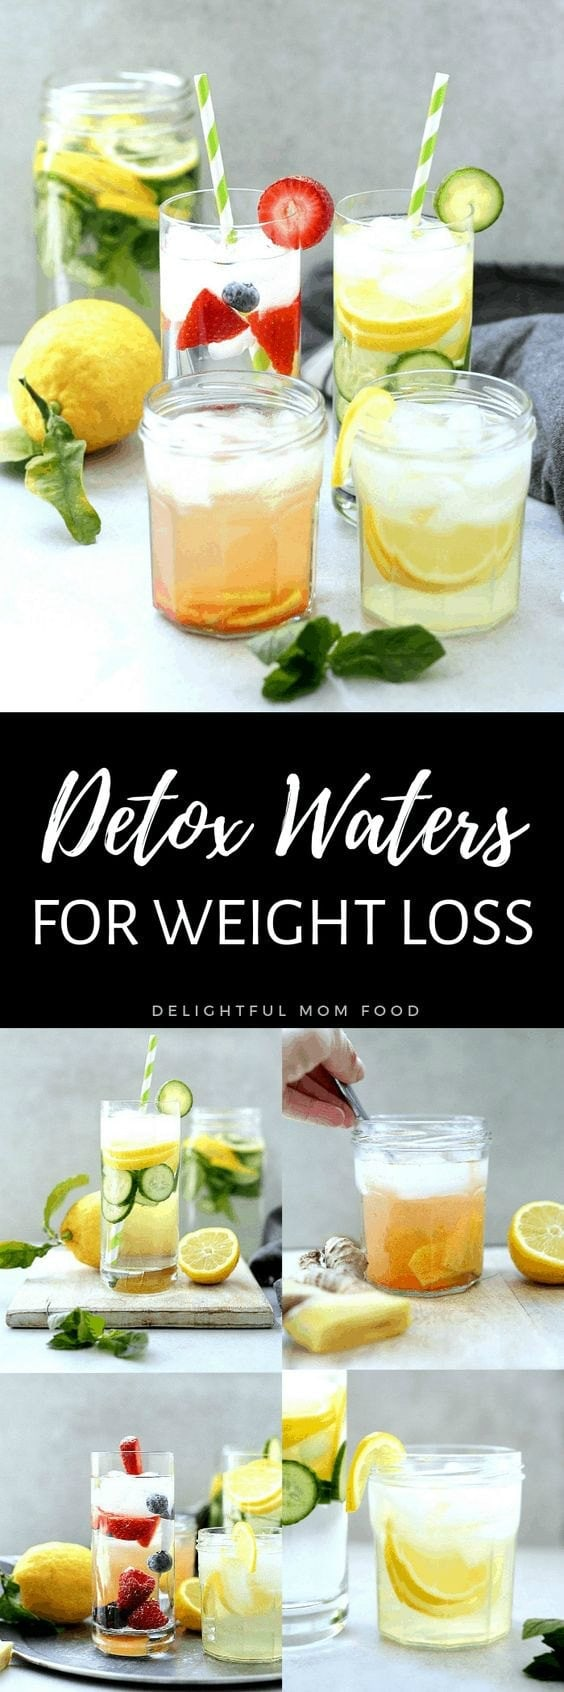 Drinking detox water for weight loss is the ultimate cleanse to heal your gut and transform your body! These detox water recipes boost your metabolism, eliminate toxins and amplify glowing skin! #detox #water #cleanse #recipes #weightloss #detoxwater #detoxdrinks | Delightful Mom Food